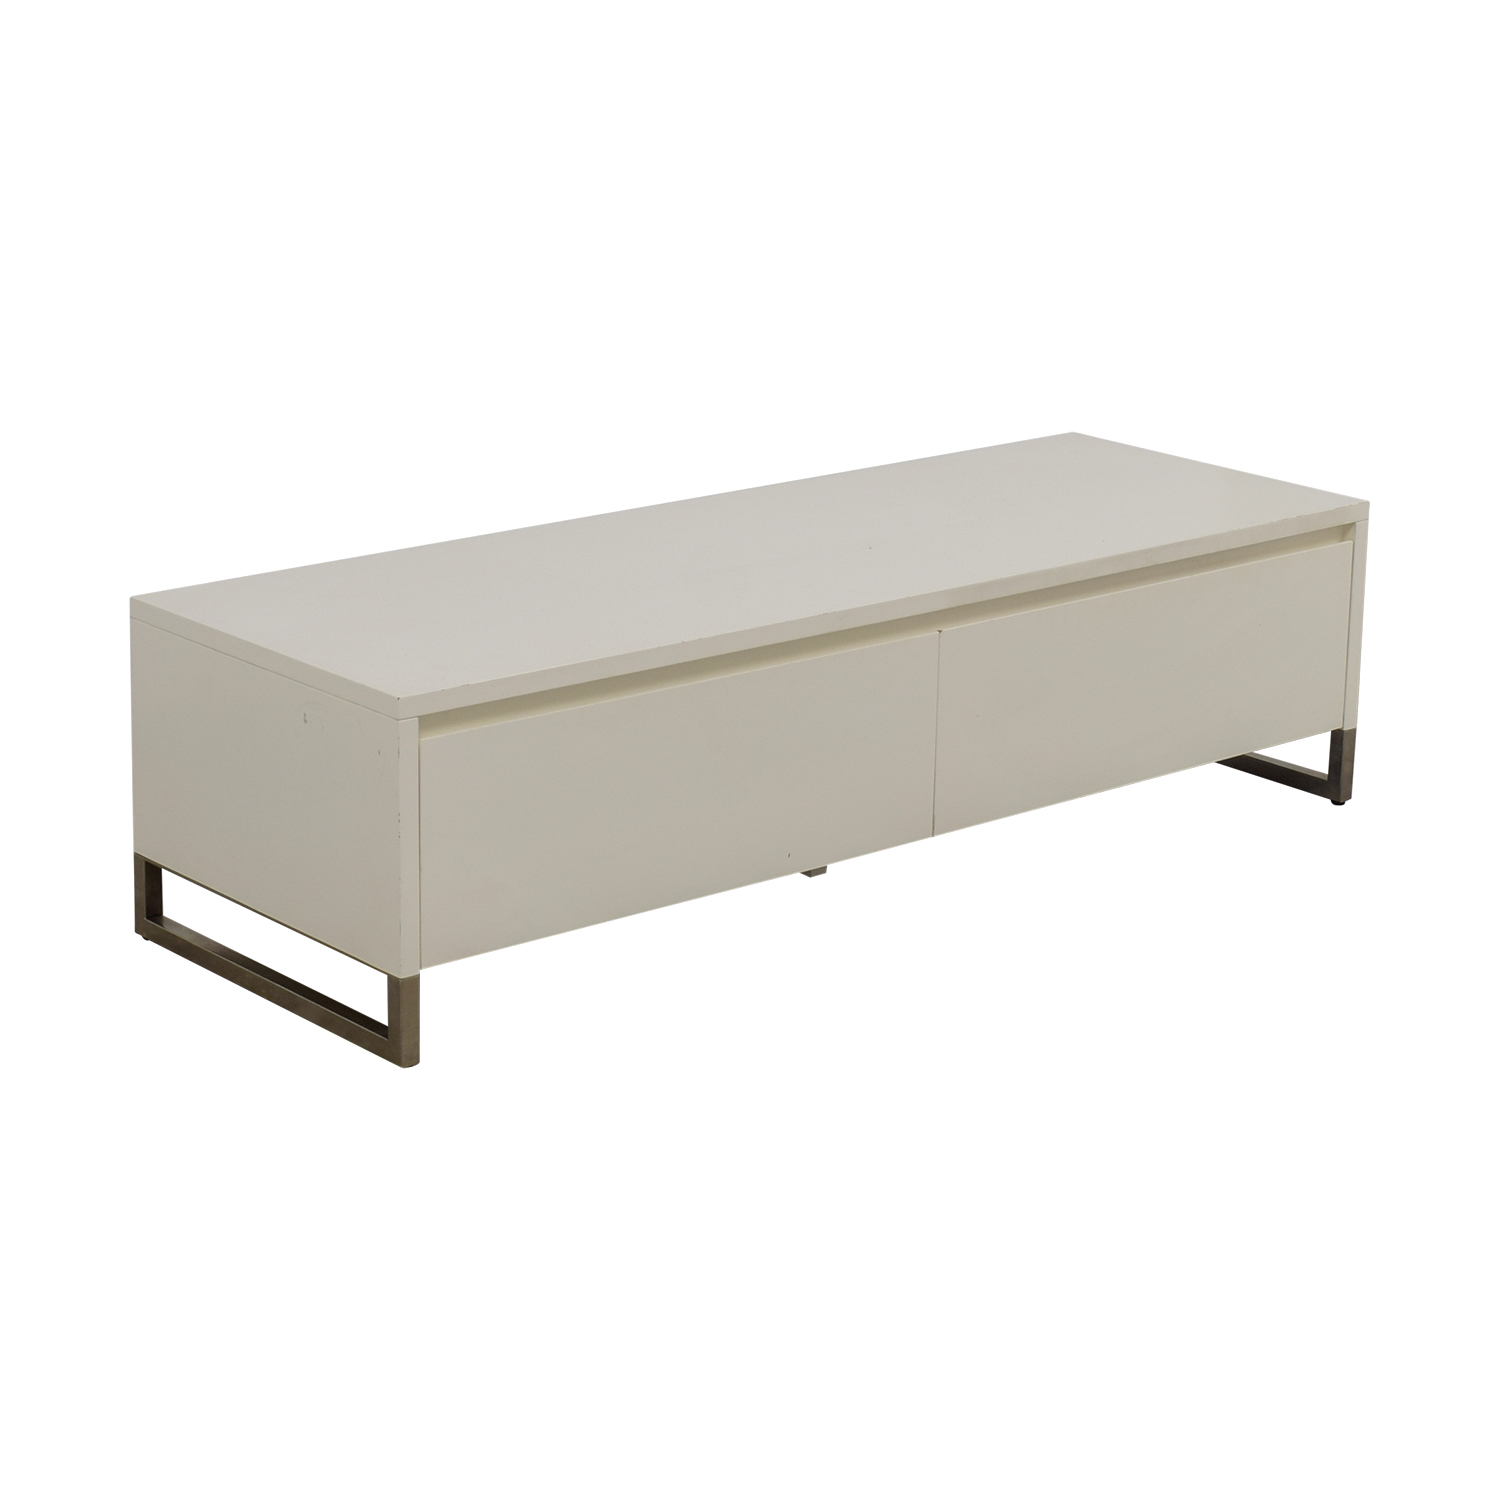 CB2 White Media Console Cabinet / Storage